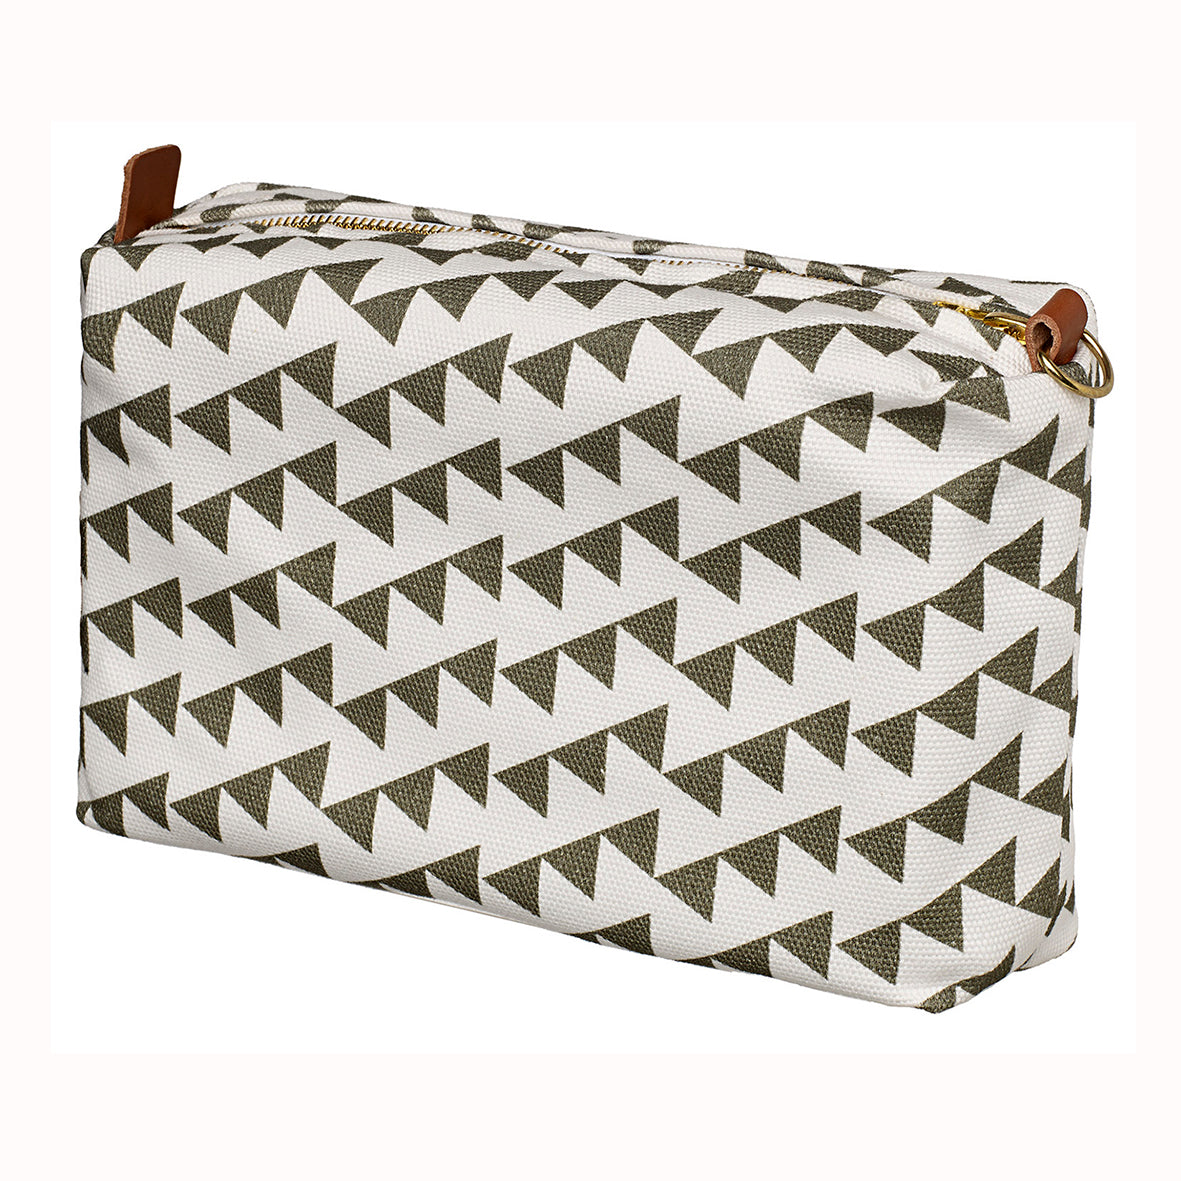 Bunting Geometric Pattern Canvas Wash Toiletry Travel, shaving kit & Cosmetic Bag - Olive Green Canada (USA)